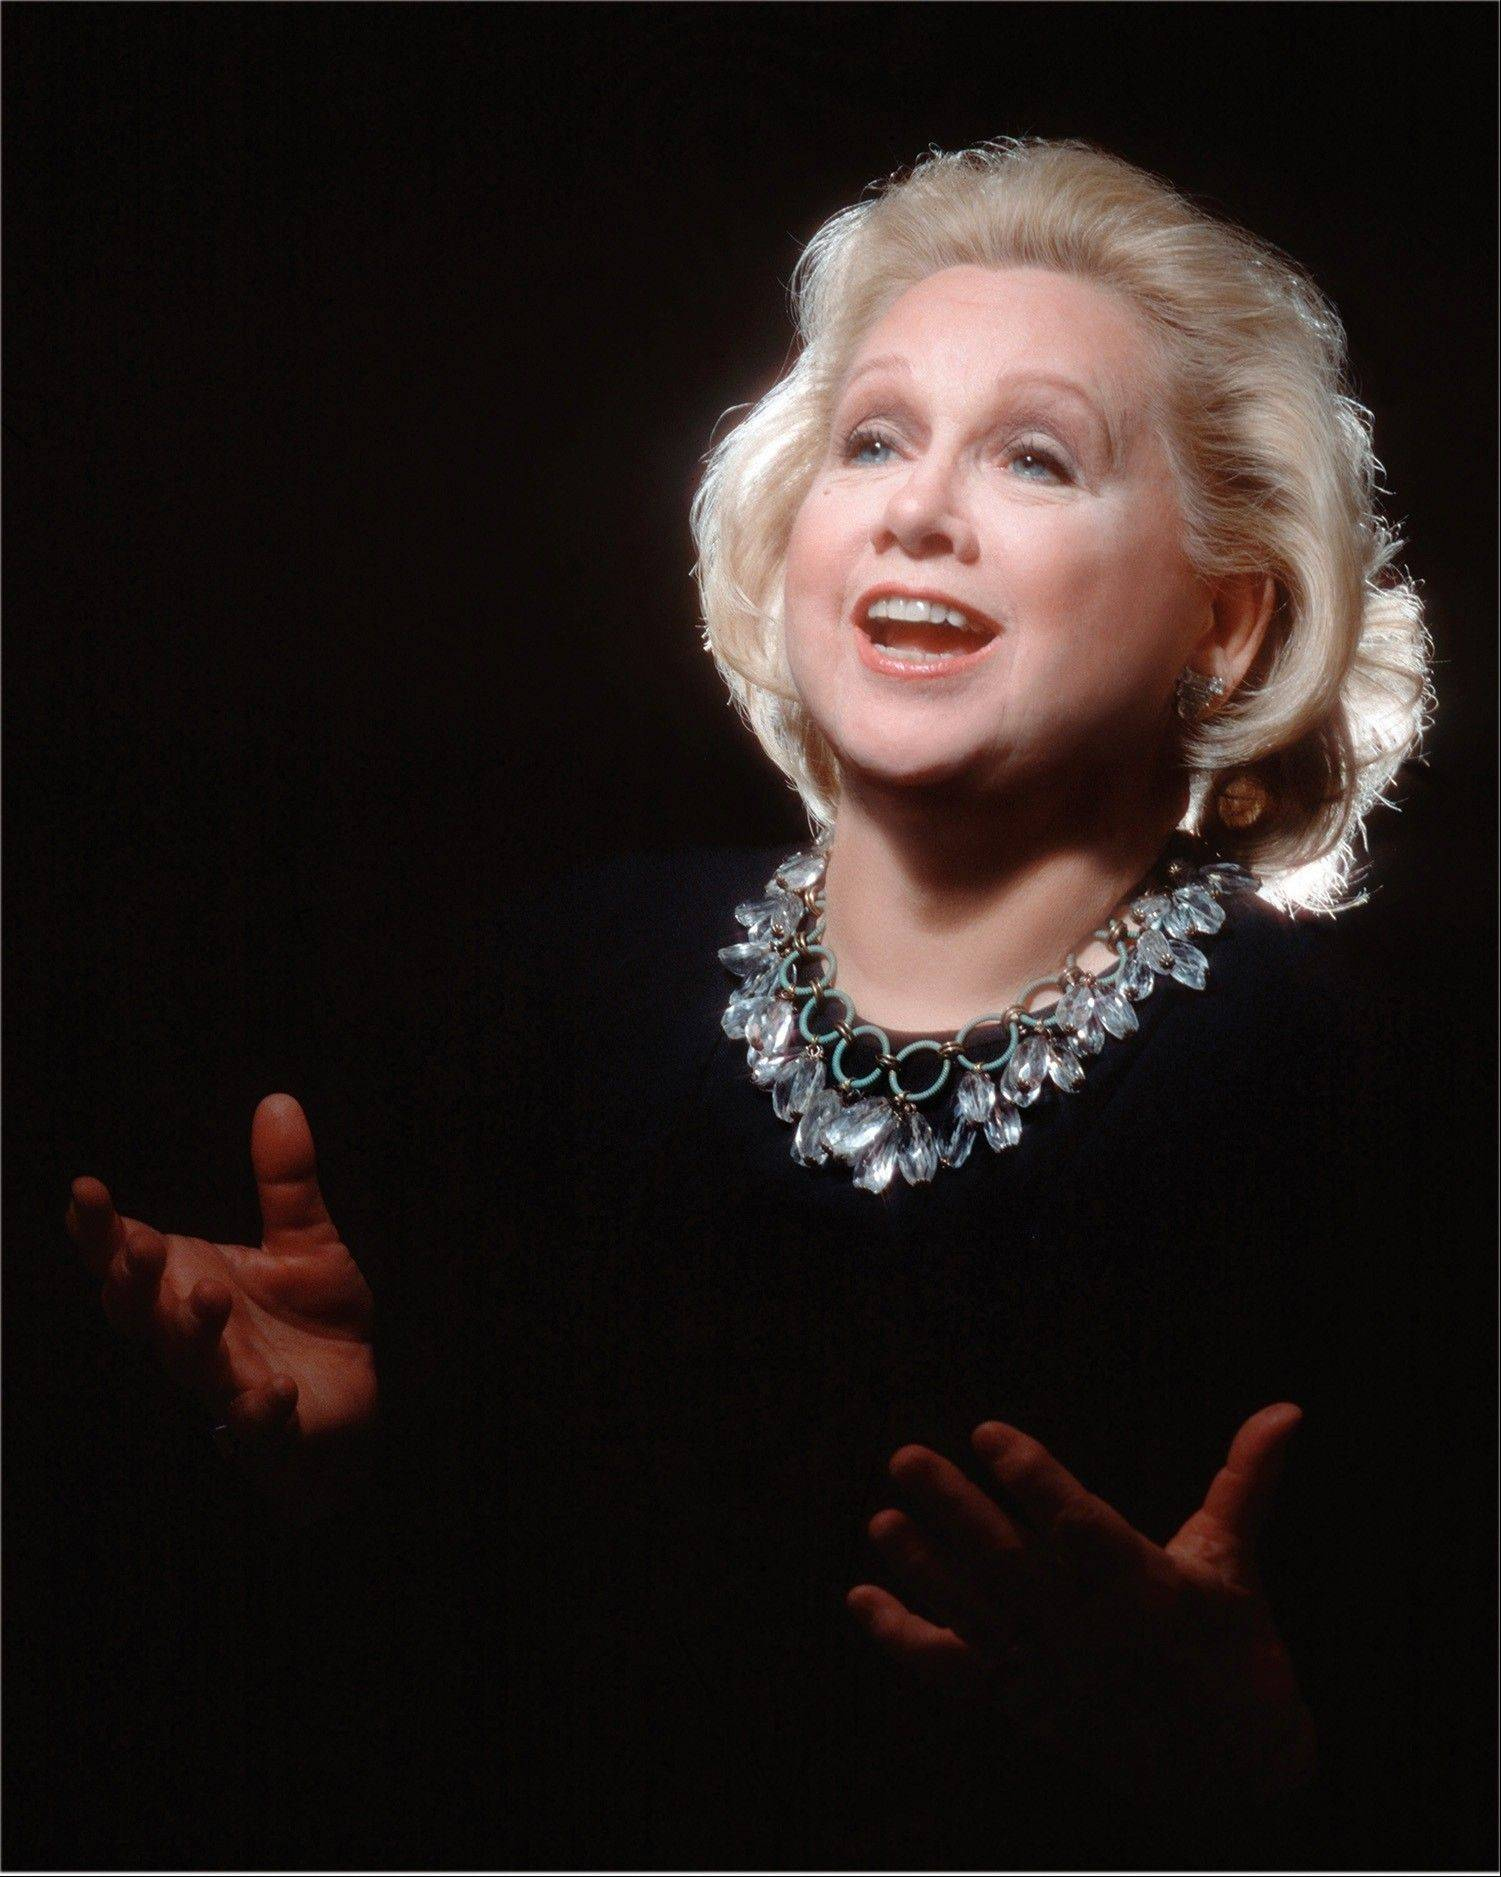 Cabaret singer and Broadway legend Barbara Cook performs with the Chicago Symphony Orchestra at Ravinia on Sunday, July 15.